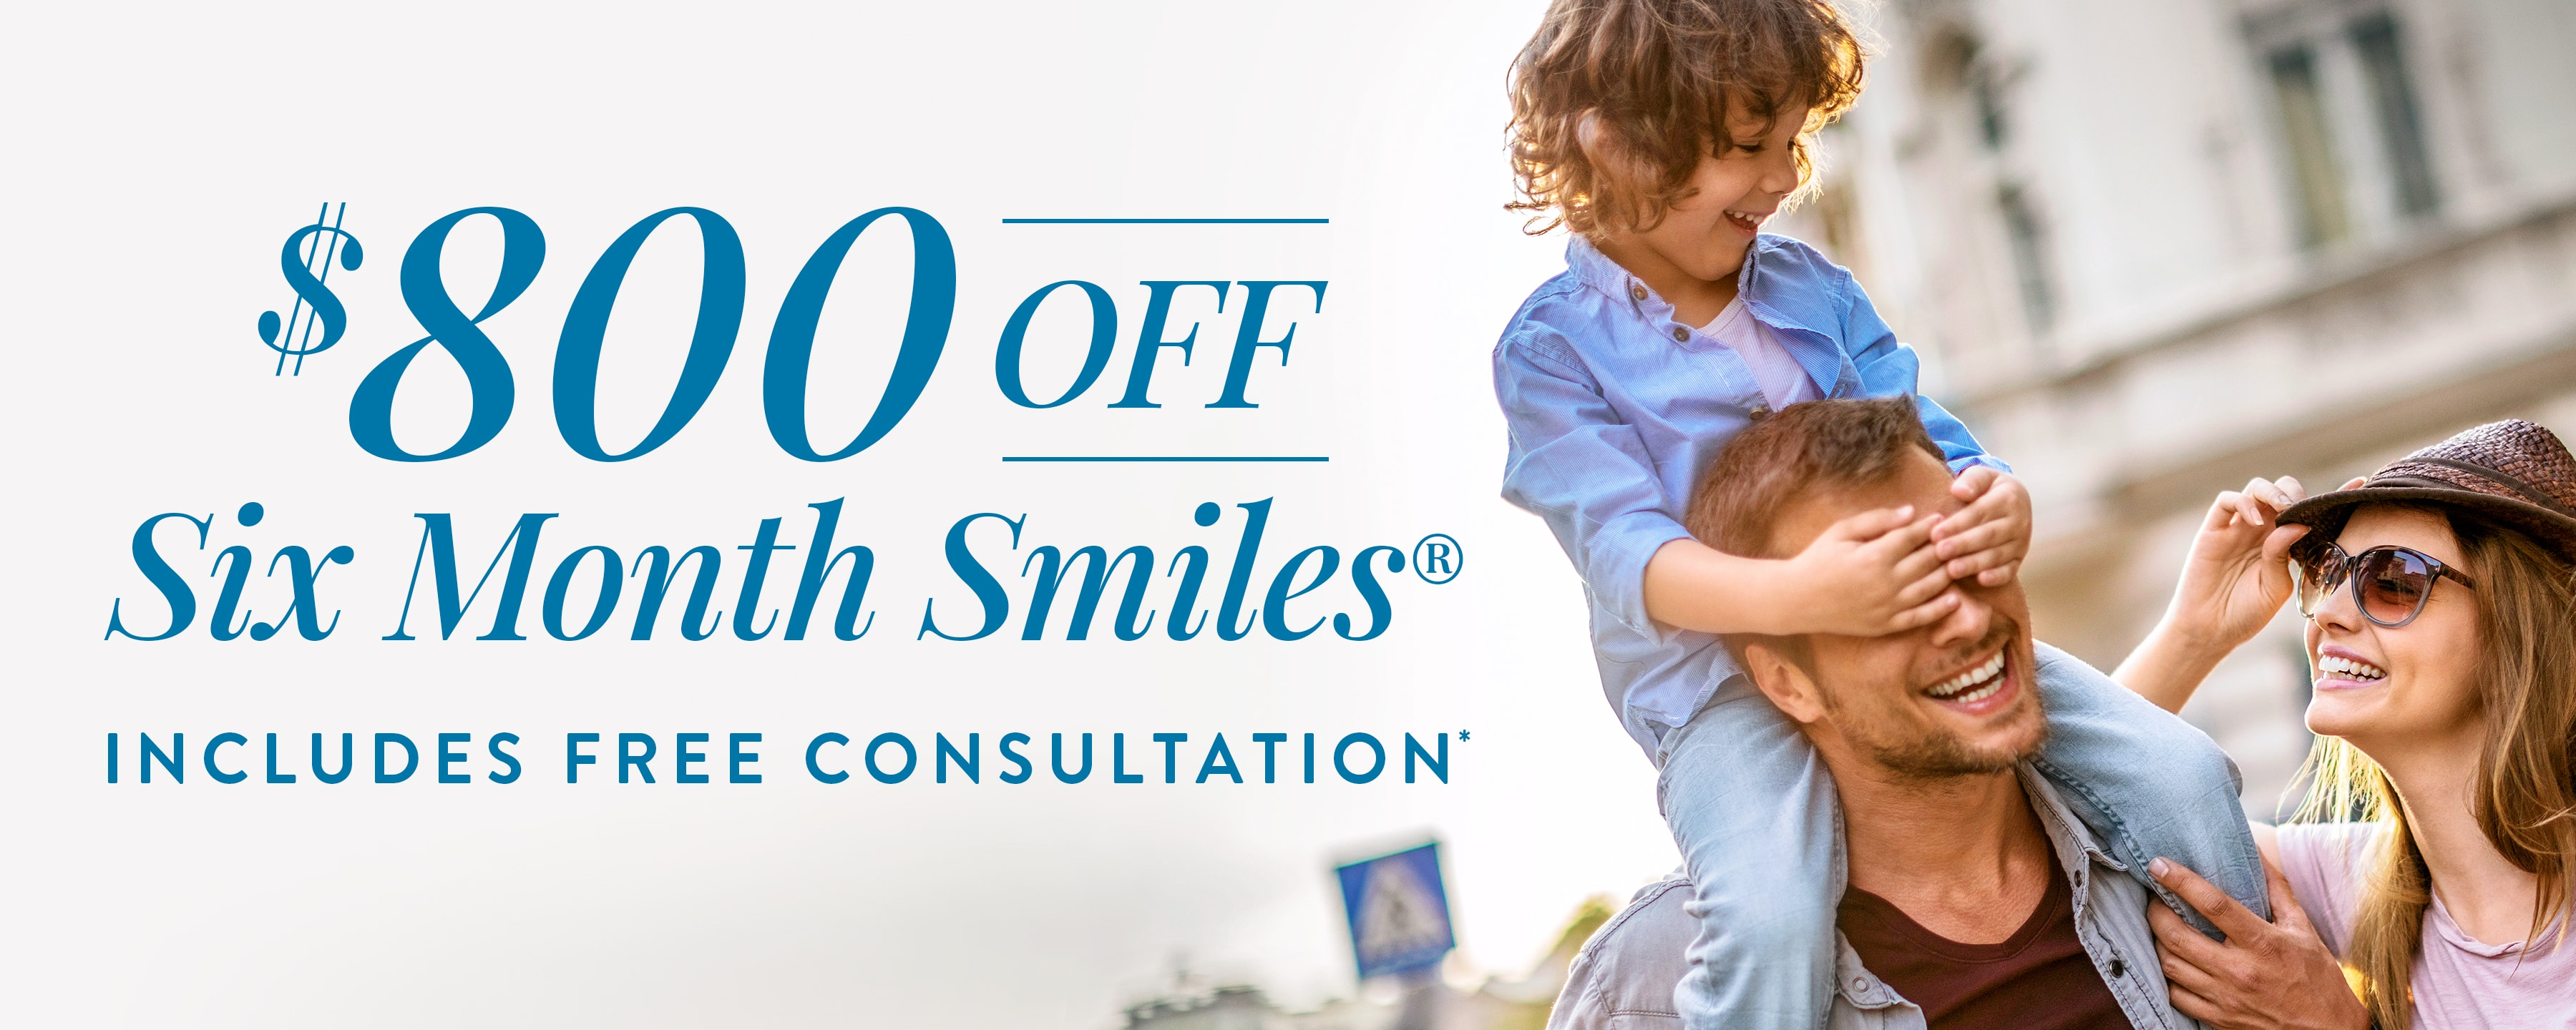 $800 OFF Six Month Smiles